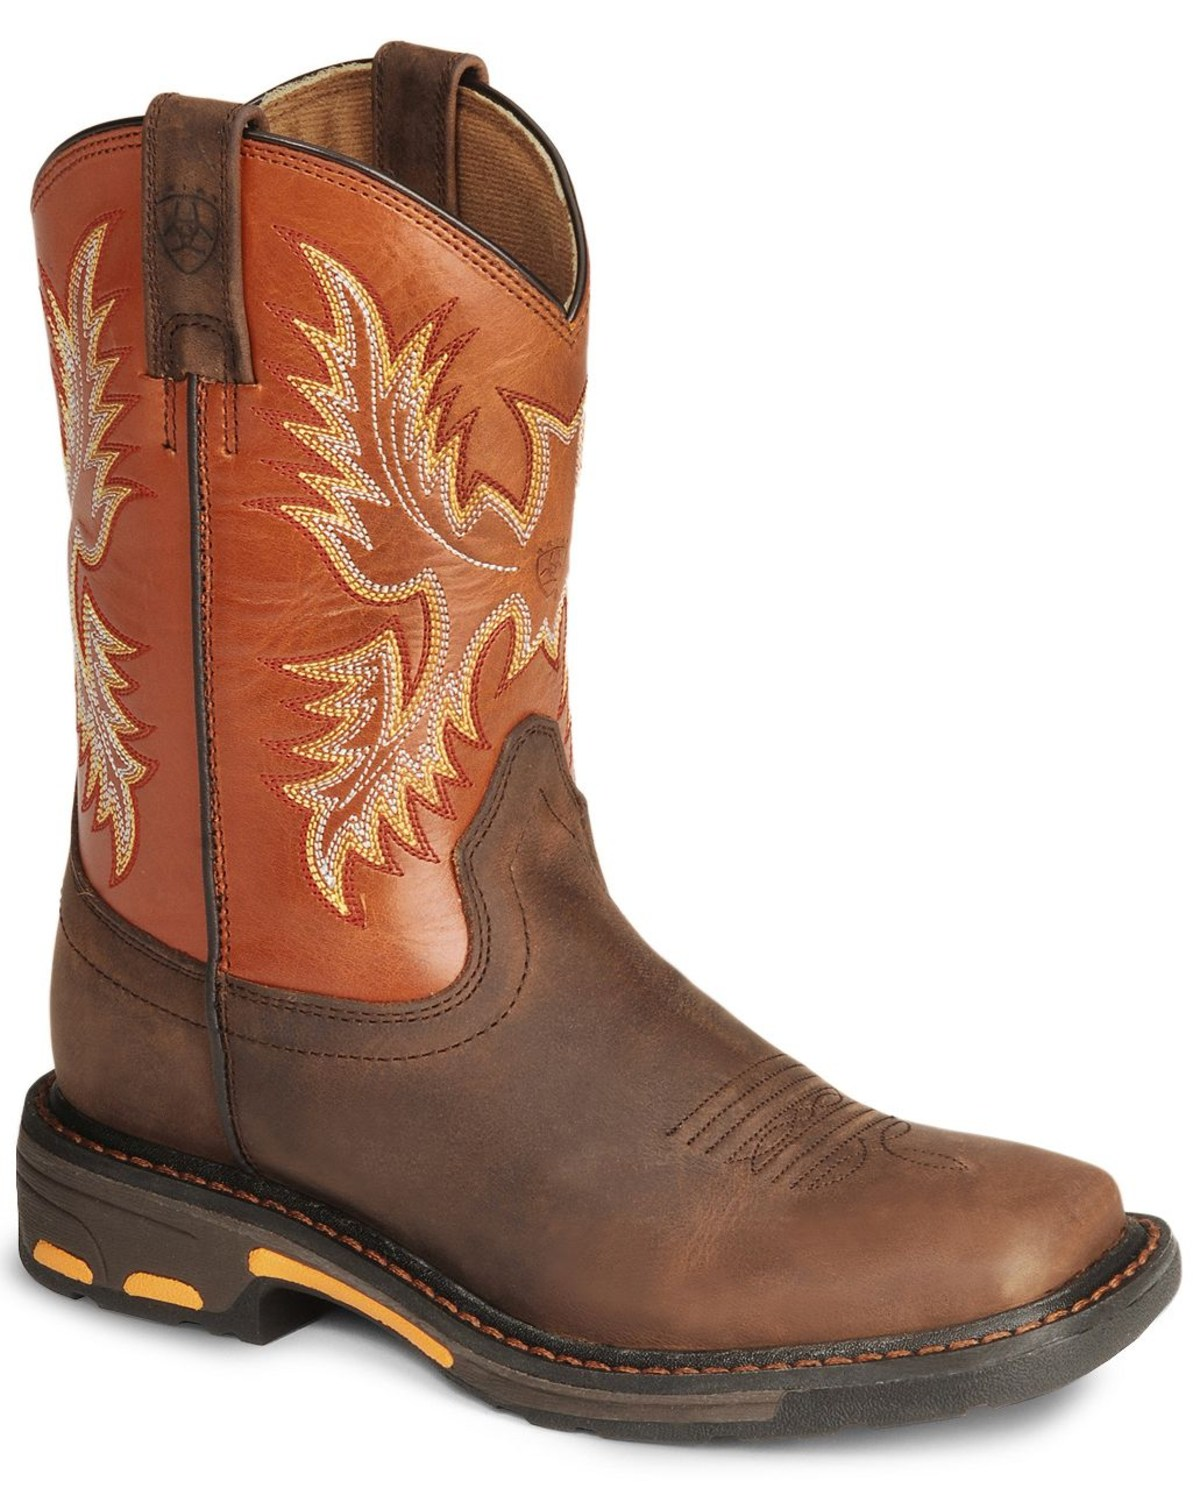 Boot Barn Sale On Ariat Shoes